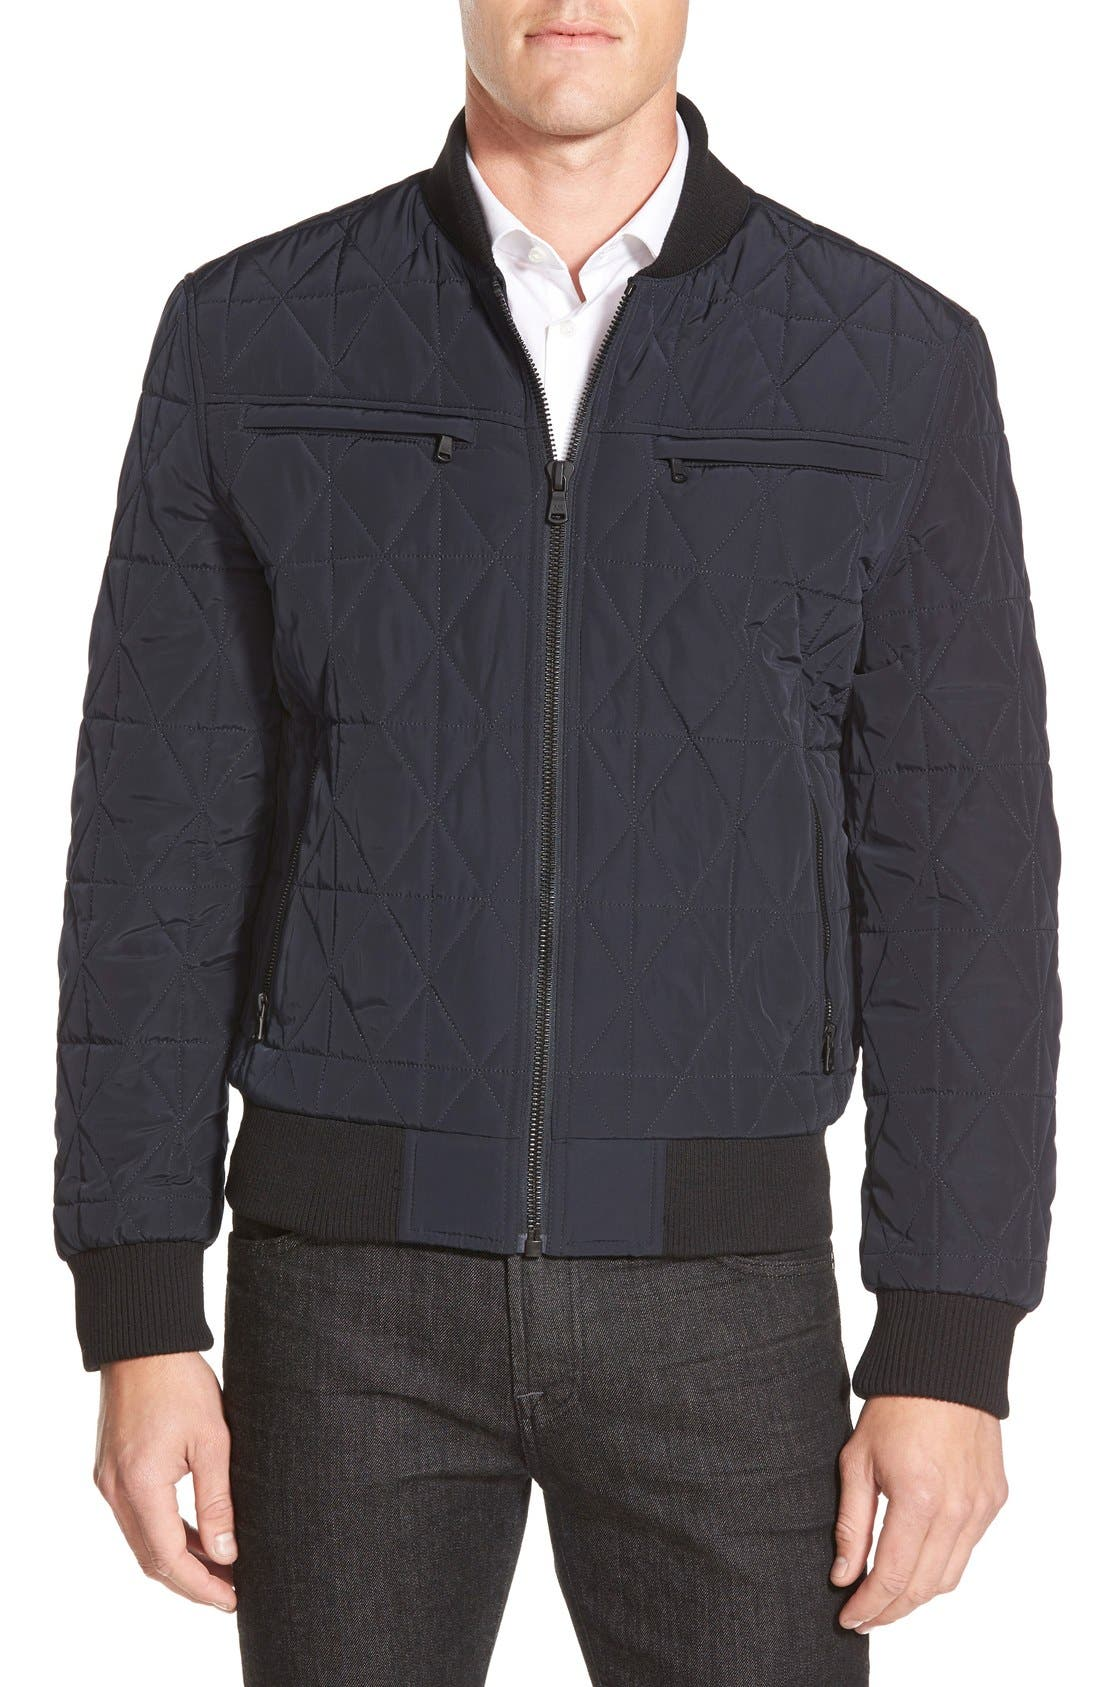 Diamond Quilted Zip Front Jacket,                         Main,                         color, Midnight Blue